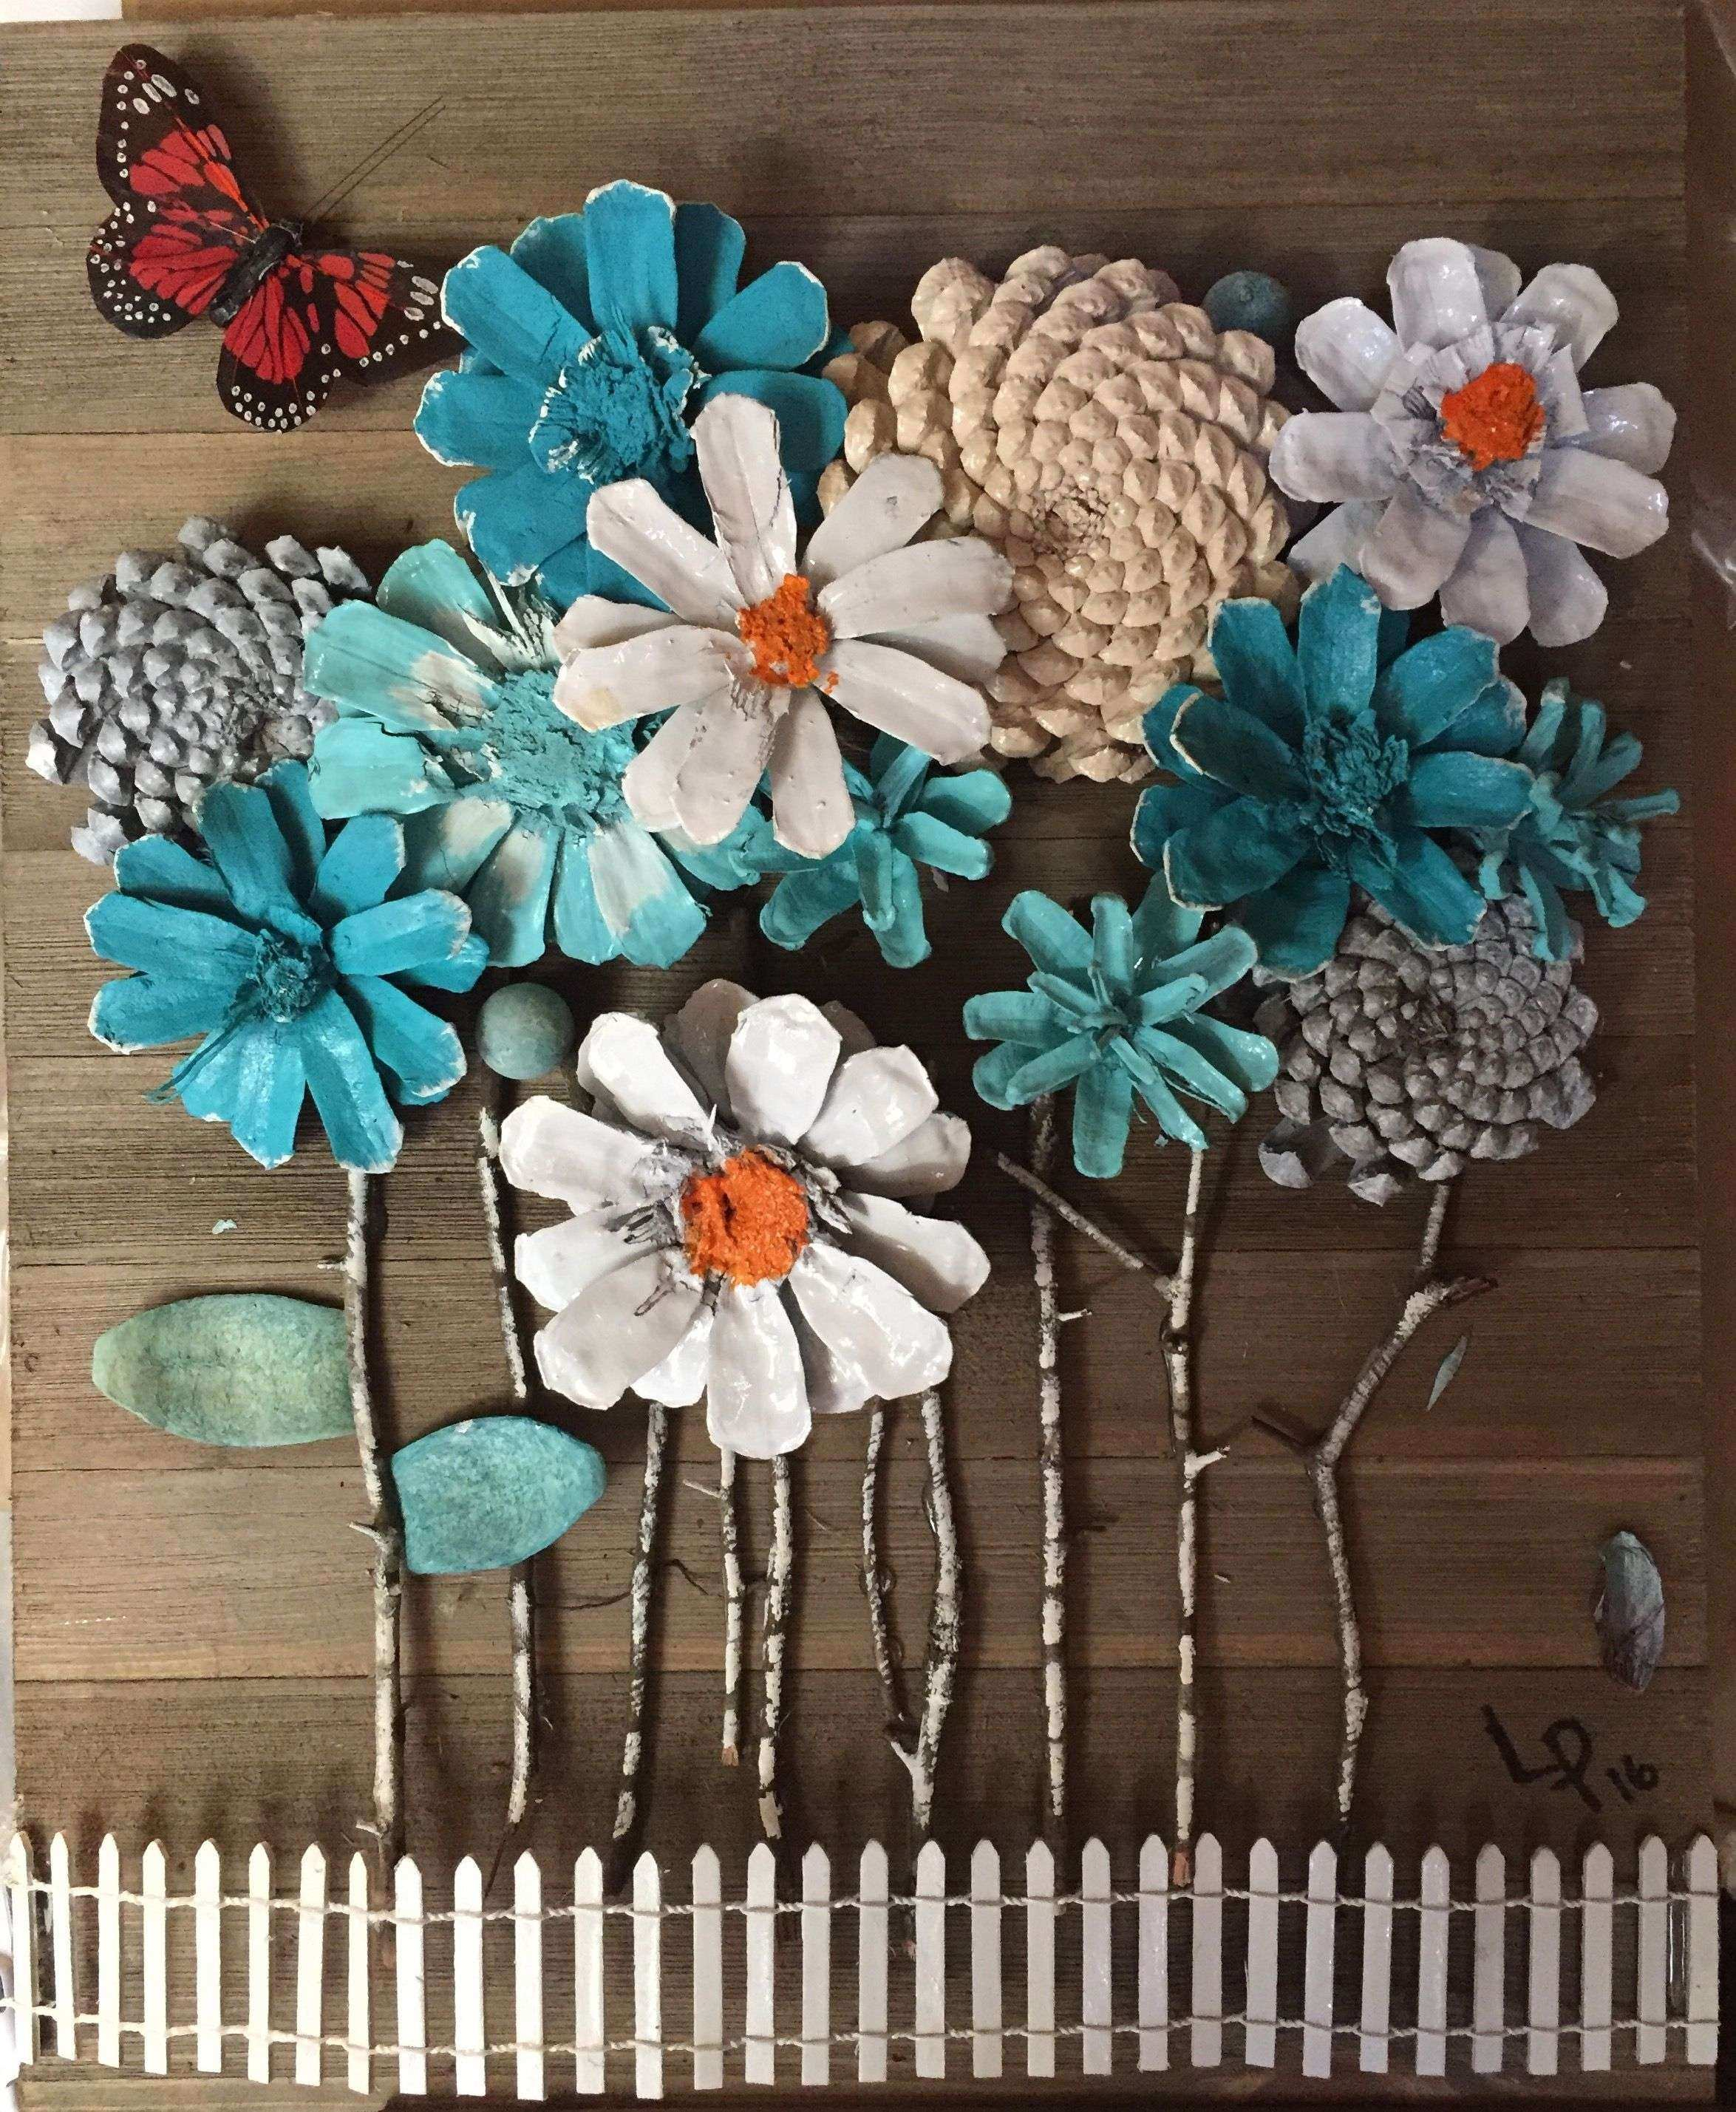 34 Unique Arts and Crafts Ideas for Adults Image